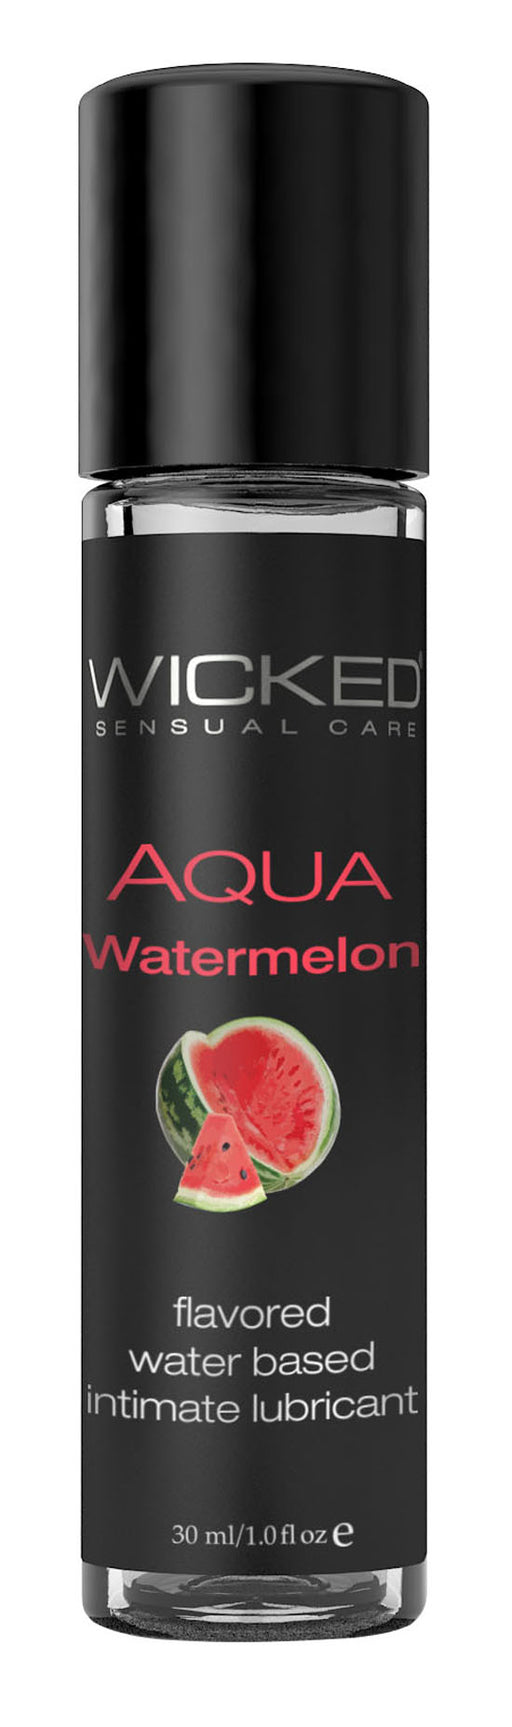 Aqua Watermelon Water-Based Lubricant 1 Oz